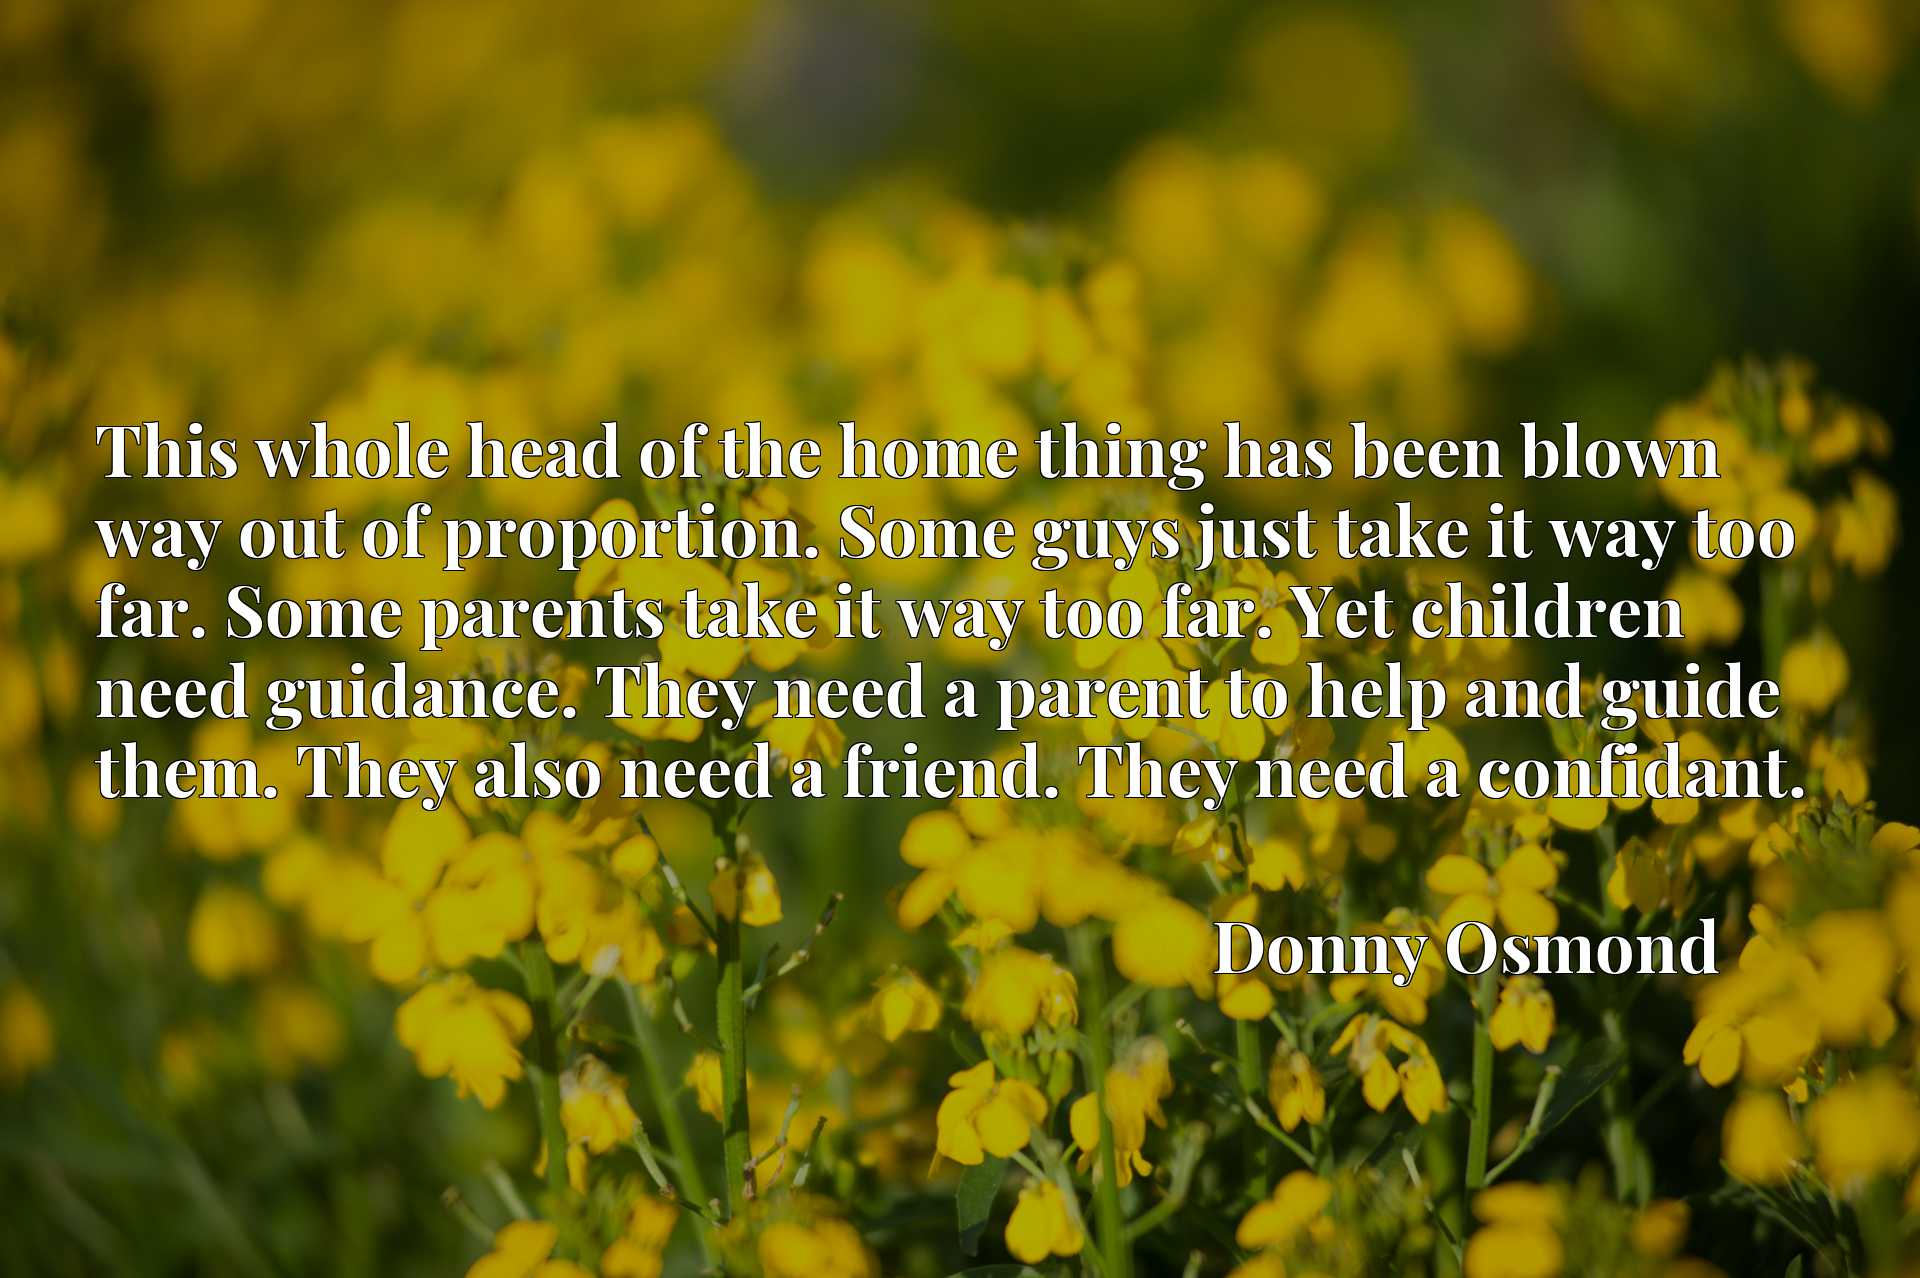 This whole head of the home thing has been blown way out of proportion. Some guys just take it way too far. Some parents take it way too far. Yet children need guidance. They need a parent to help and guide them. They also need a friend. They need a confidant.